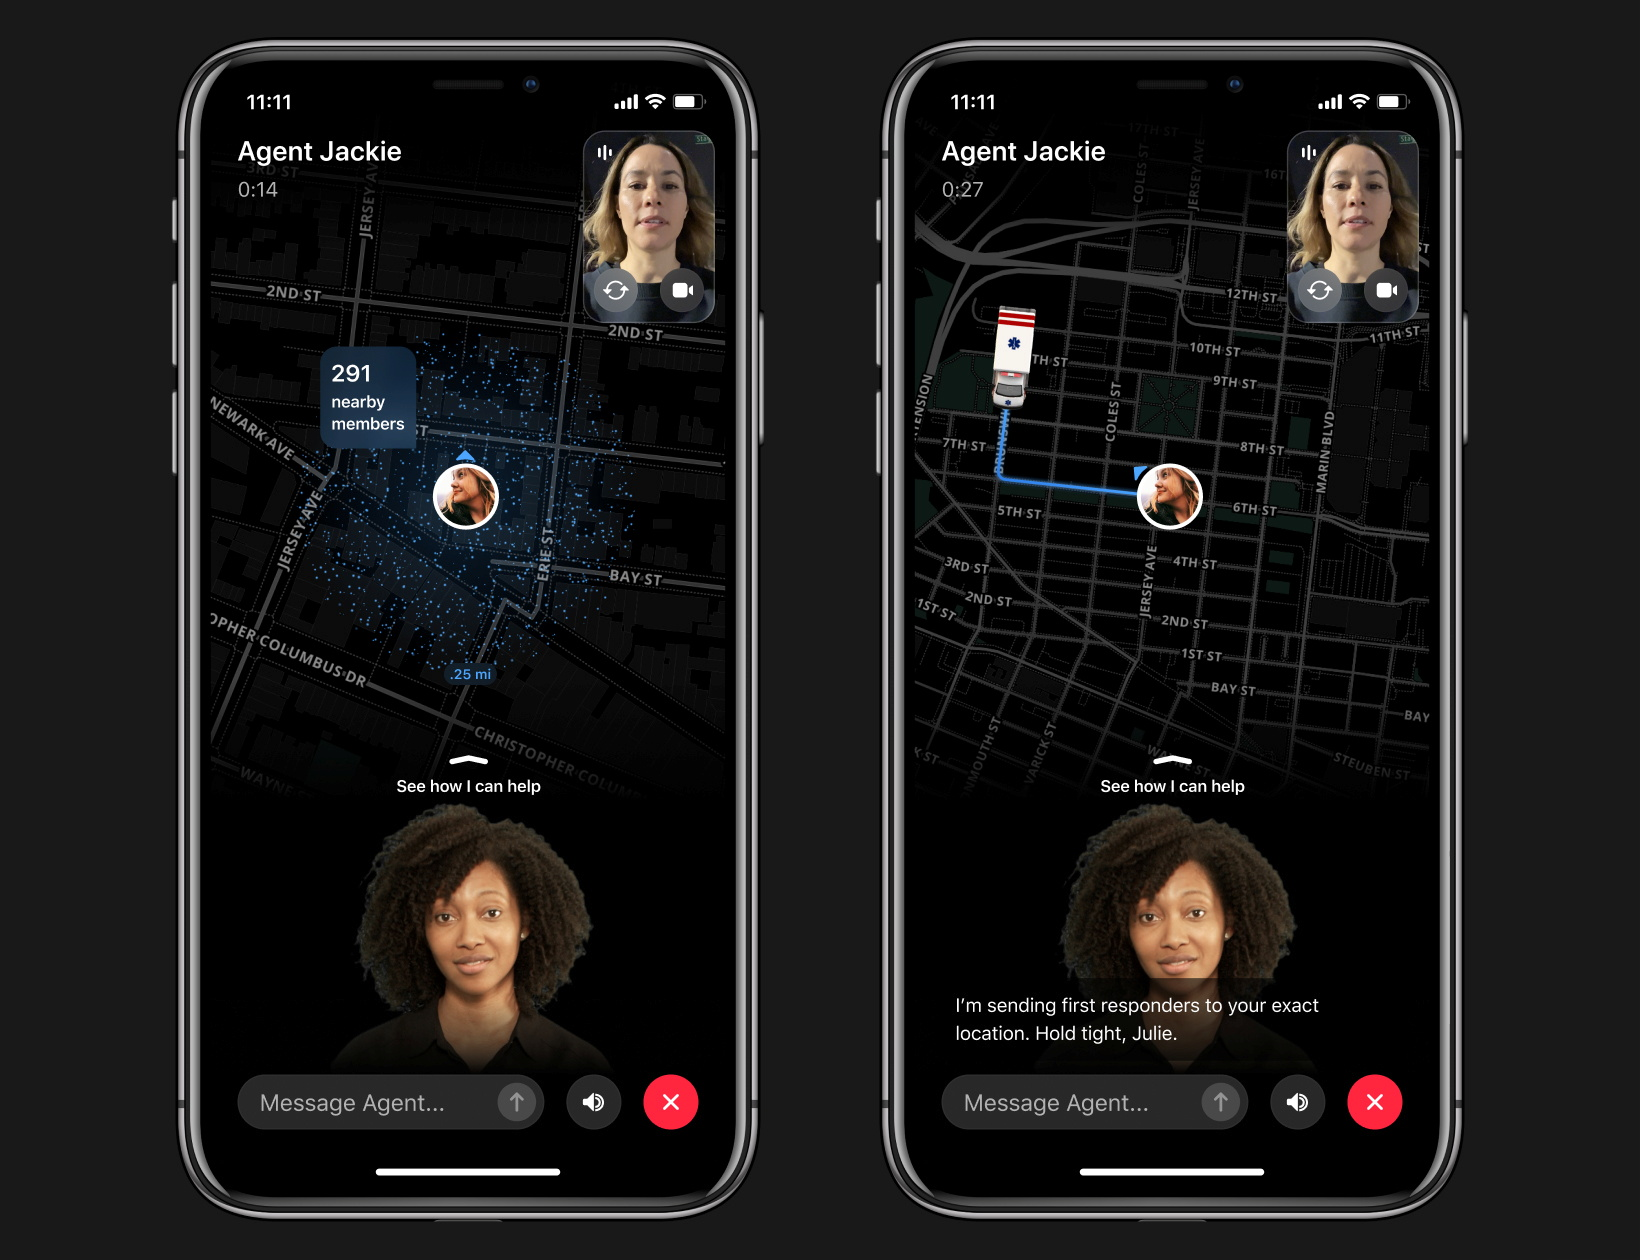 Local crime alert app Citizen's new feature 'Protect', which puts paying subscribers in contact with safety agents, is seen in this handout image provided by the company. Citizen/sp0n, Inc./Handout via REUTERS